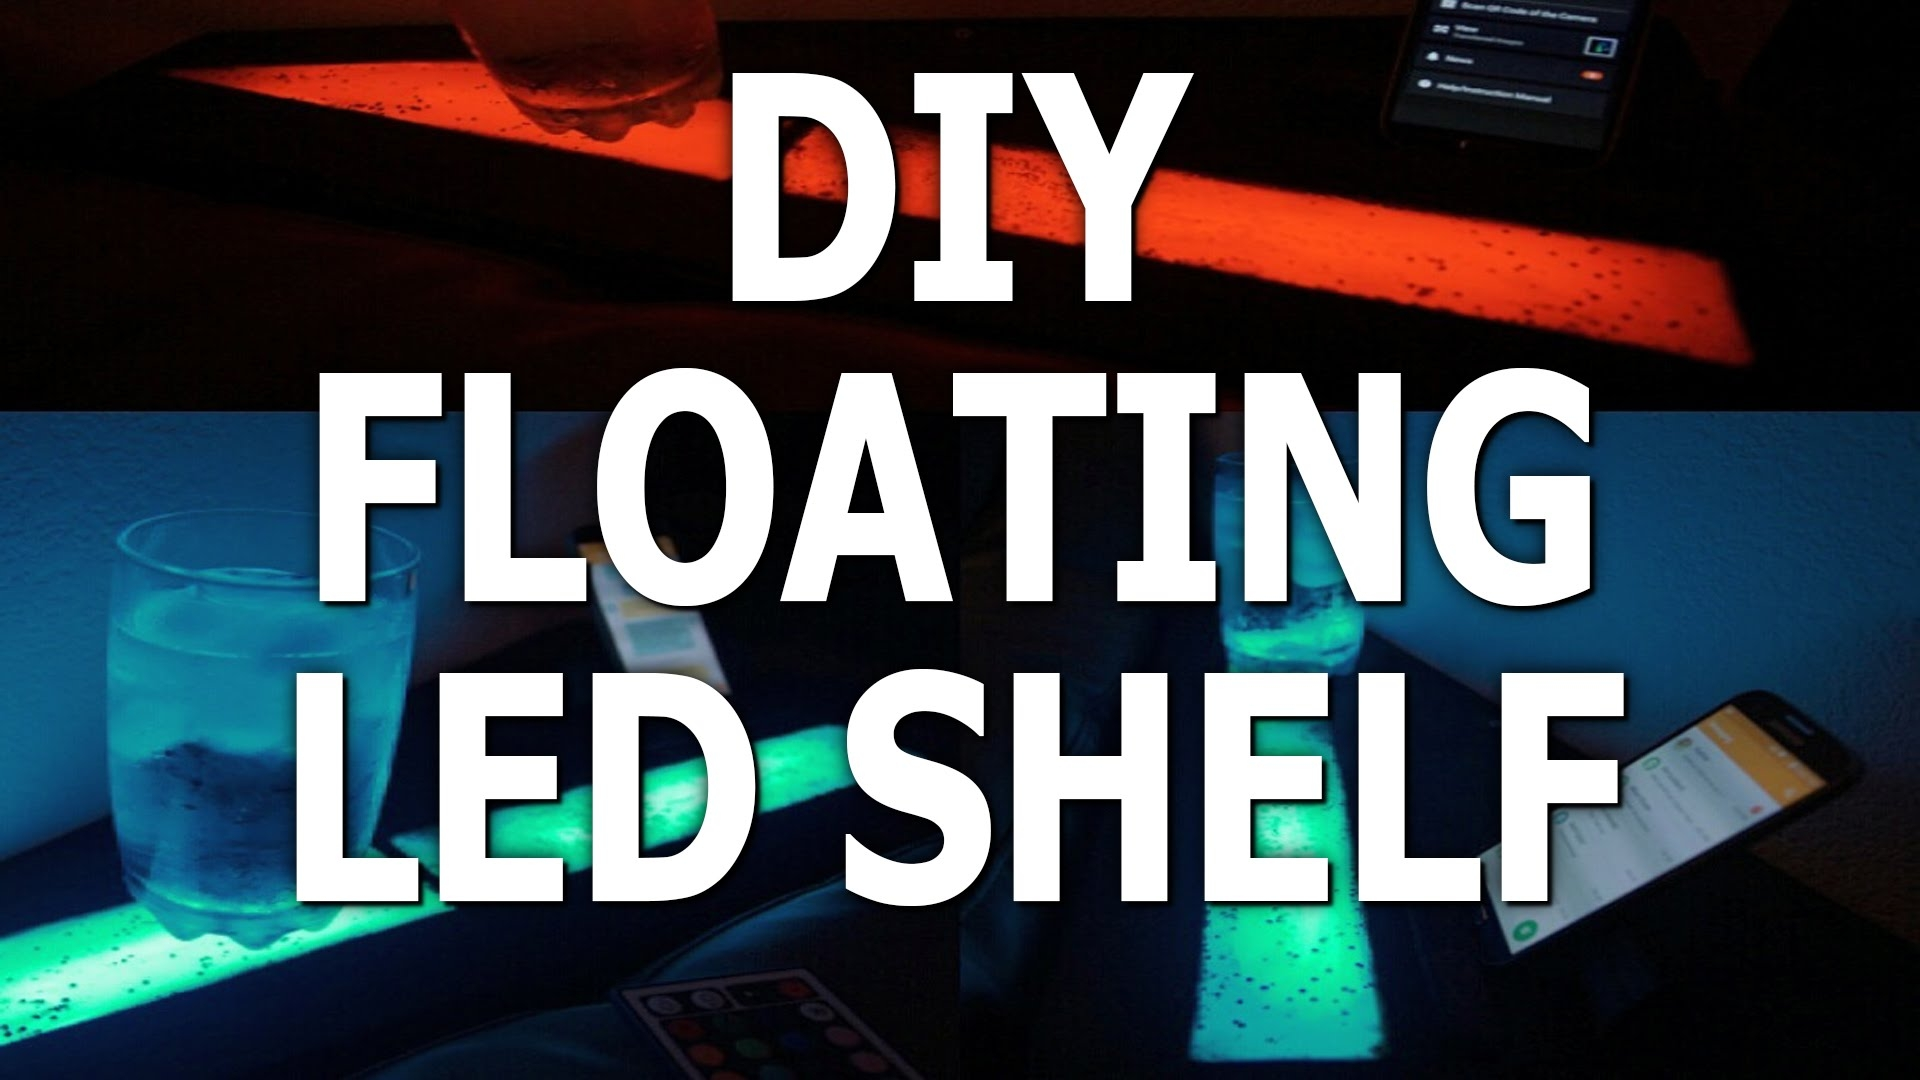 Led Strip Floating Shelf Furniture Lighting Youtube Pertaining To Led Floating Shelves (Image 14 of 15)